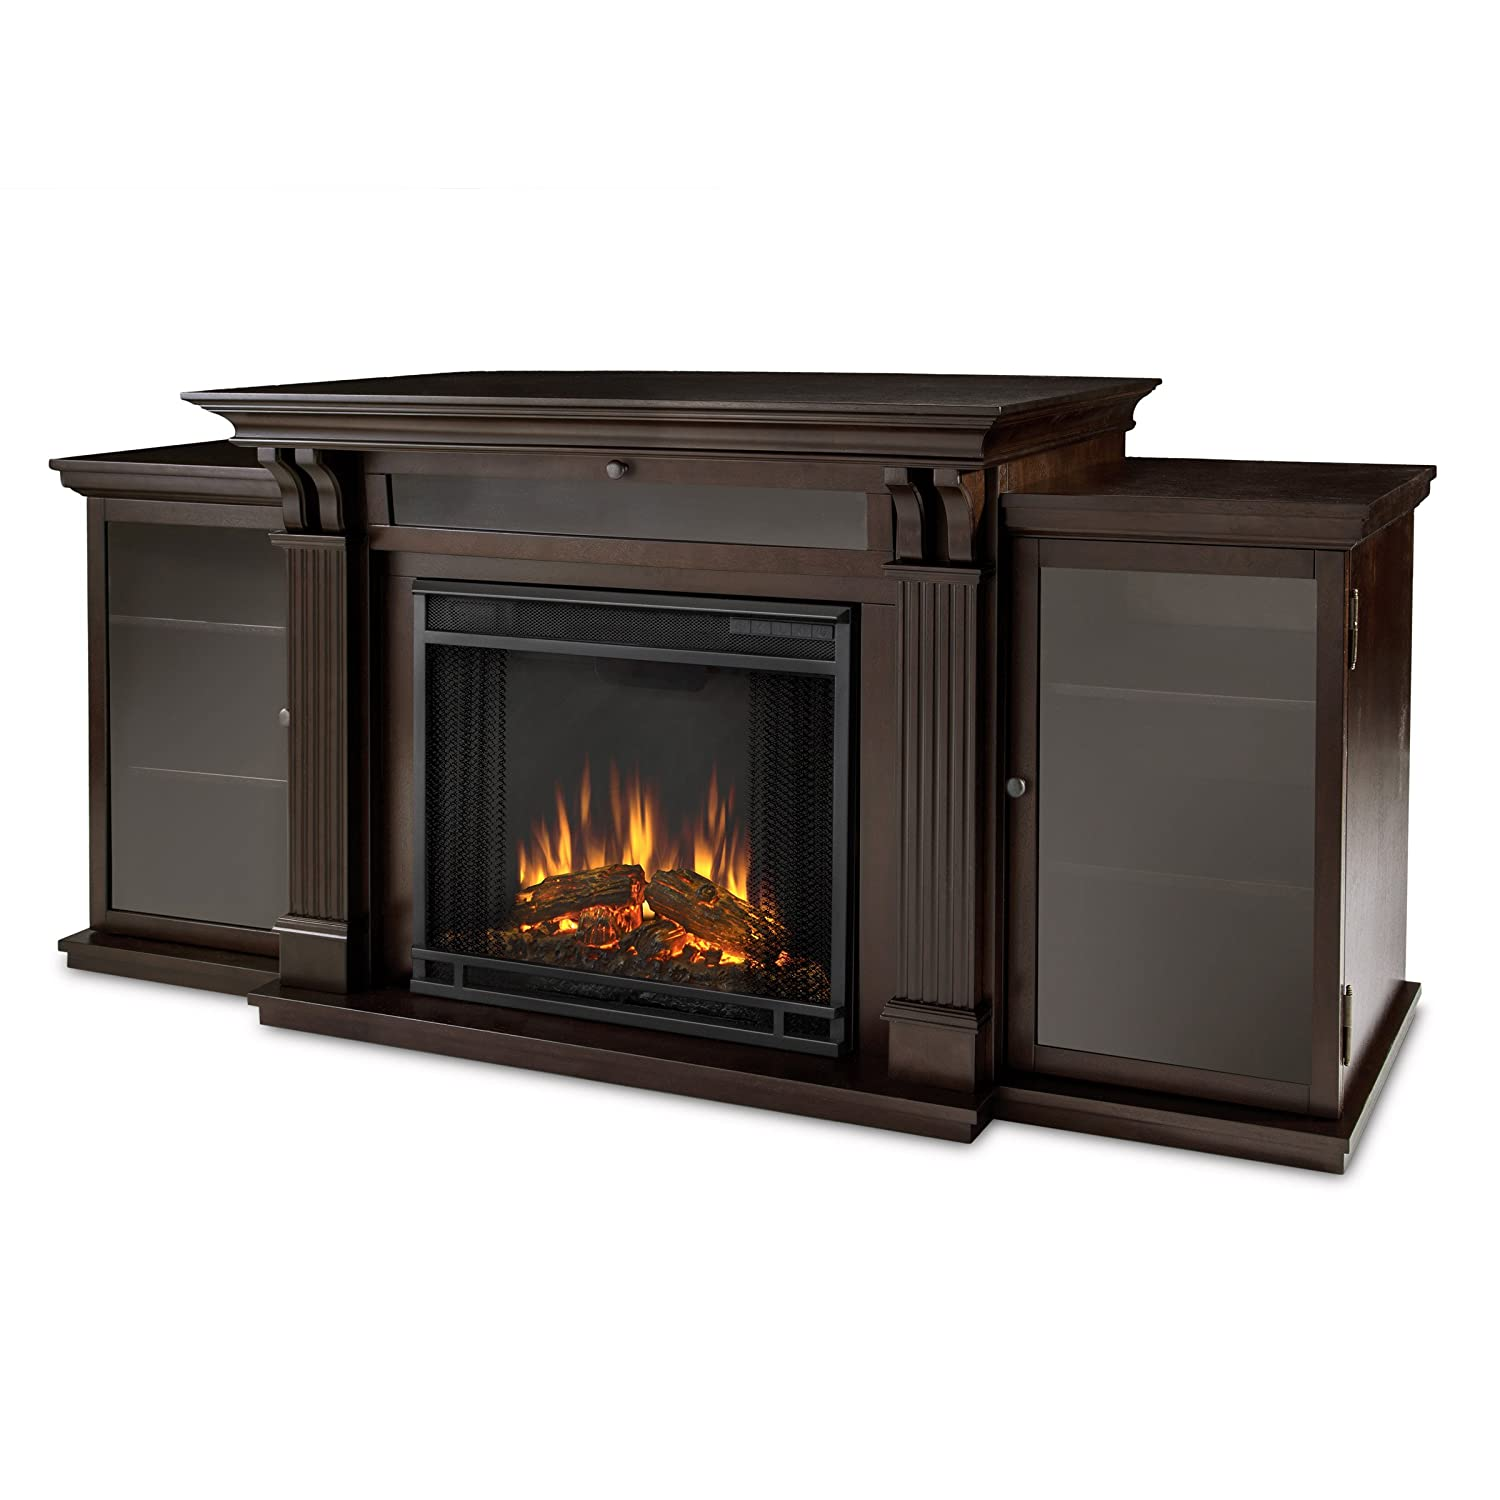 Real Flame Calie Electric Fireplace Tv Stand Review 7720e